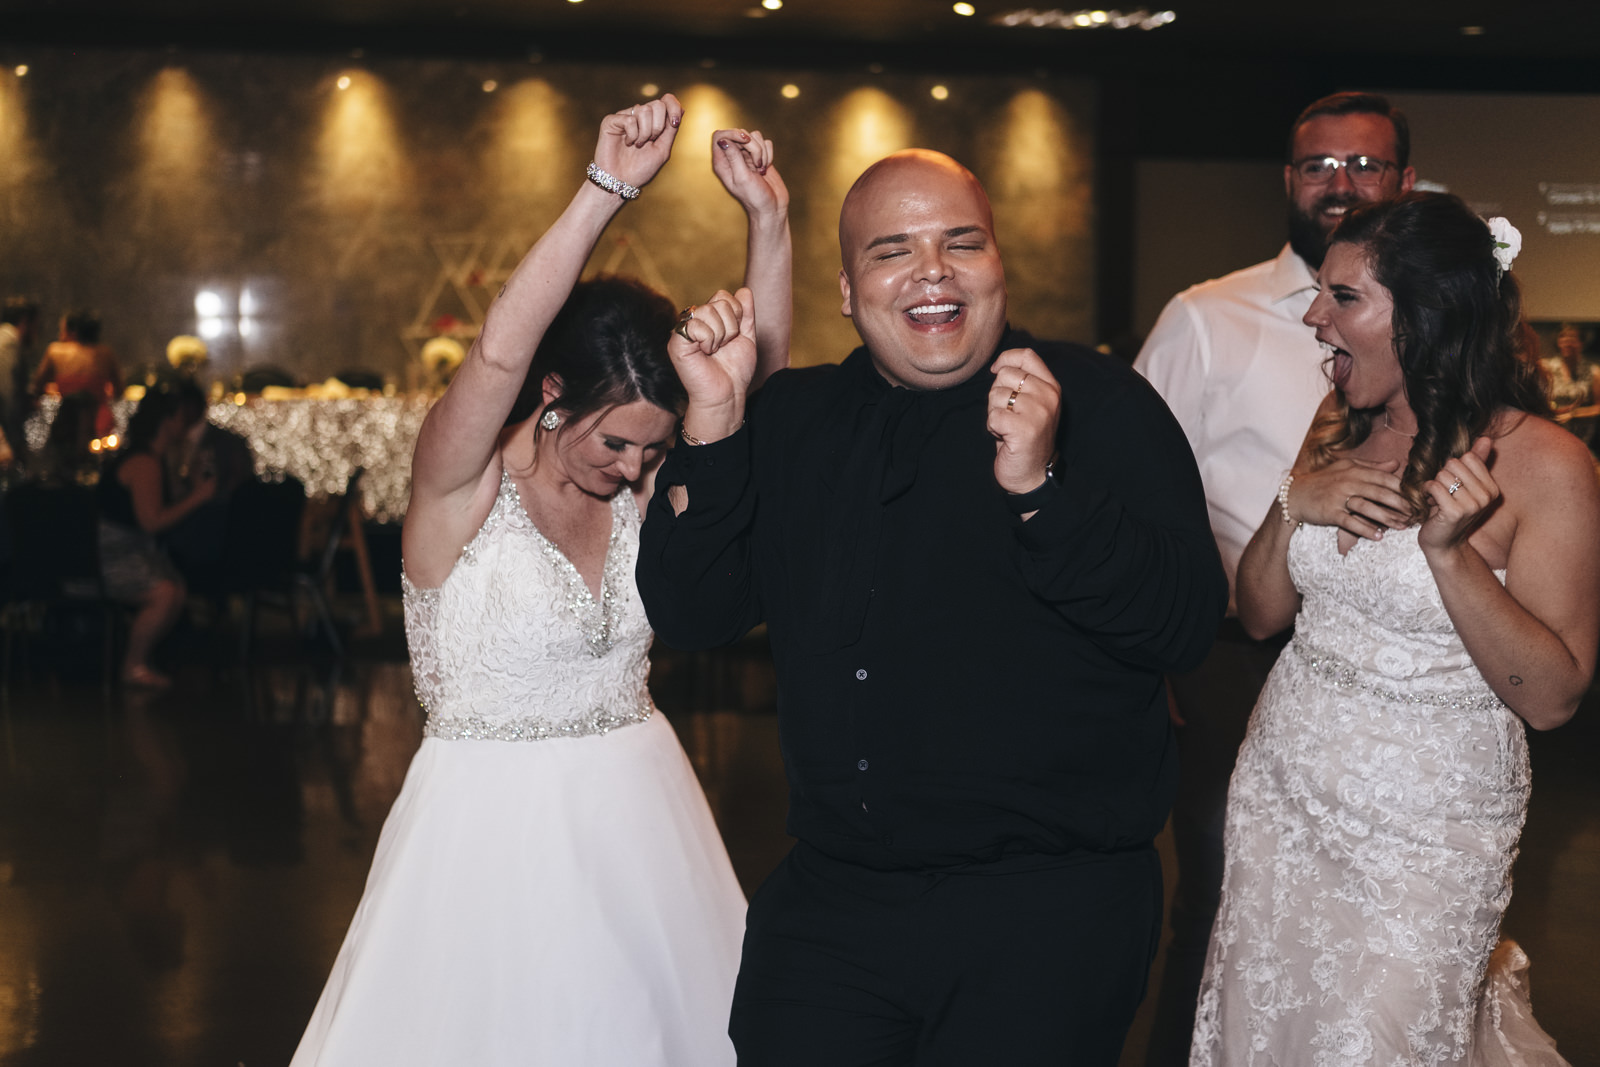 Brides dance with their friends at their wedding reception at The Premier